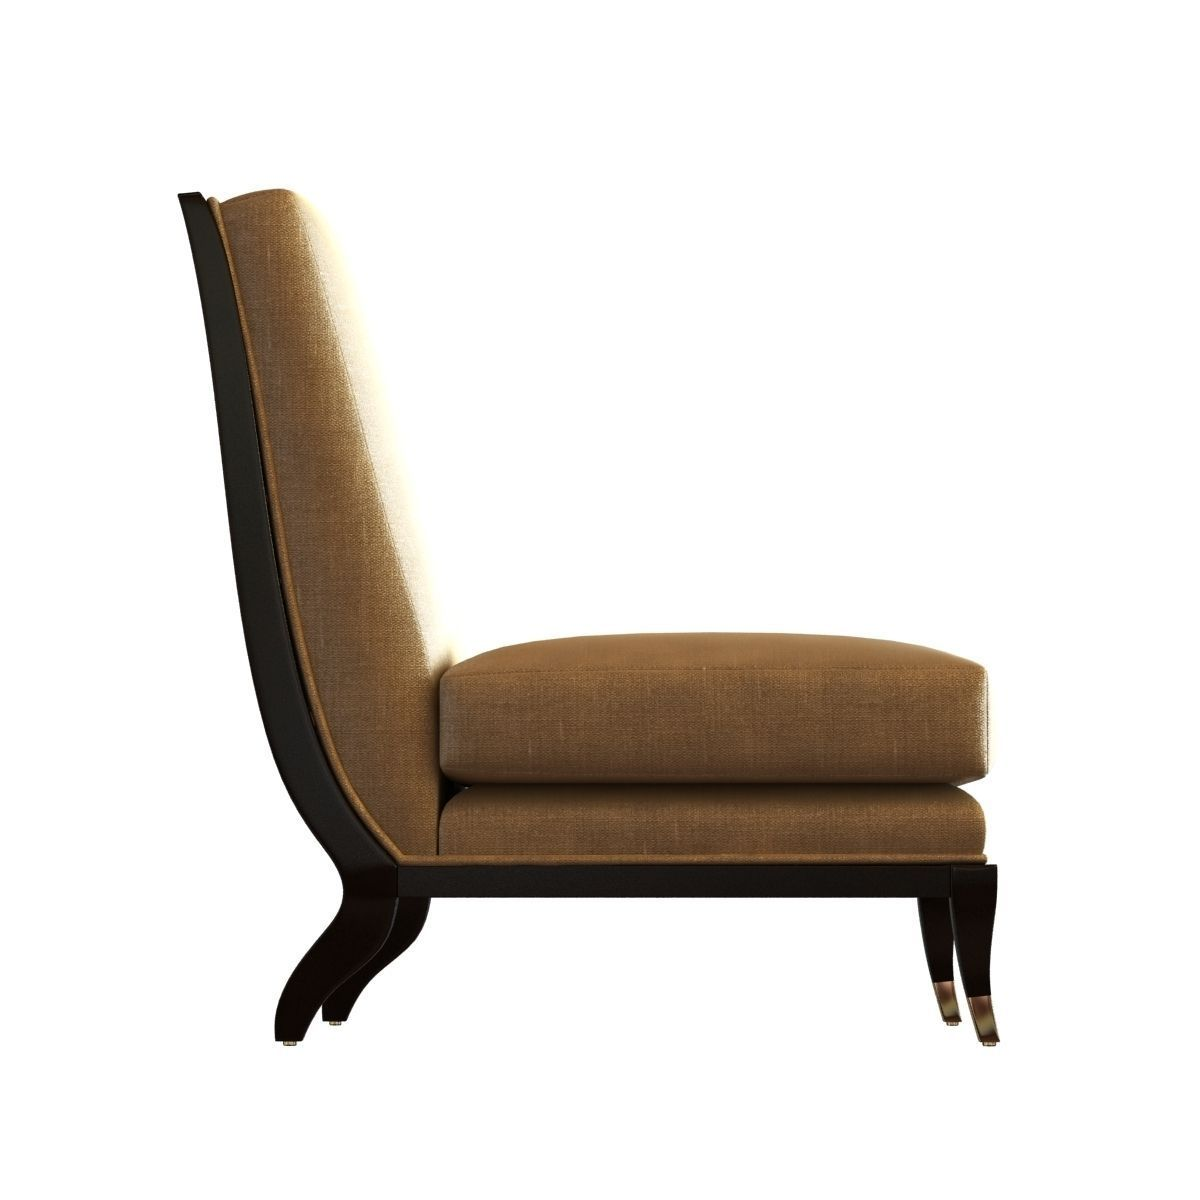 The armless chaise apollon chair 3d model max obj 3ds fbx for Armless chaise lounge